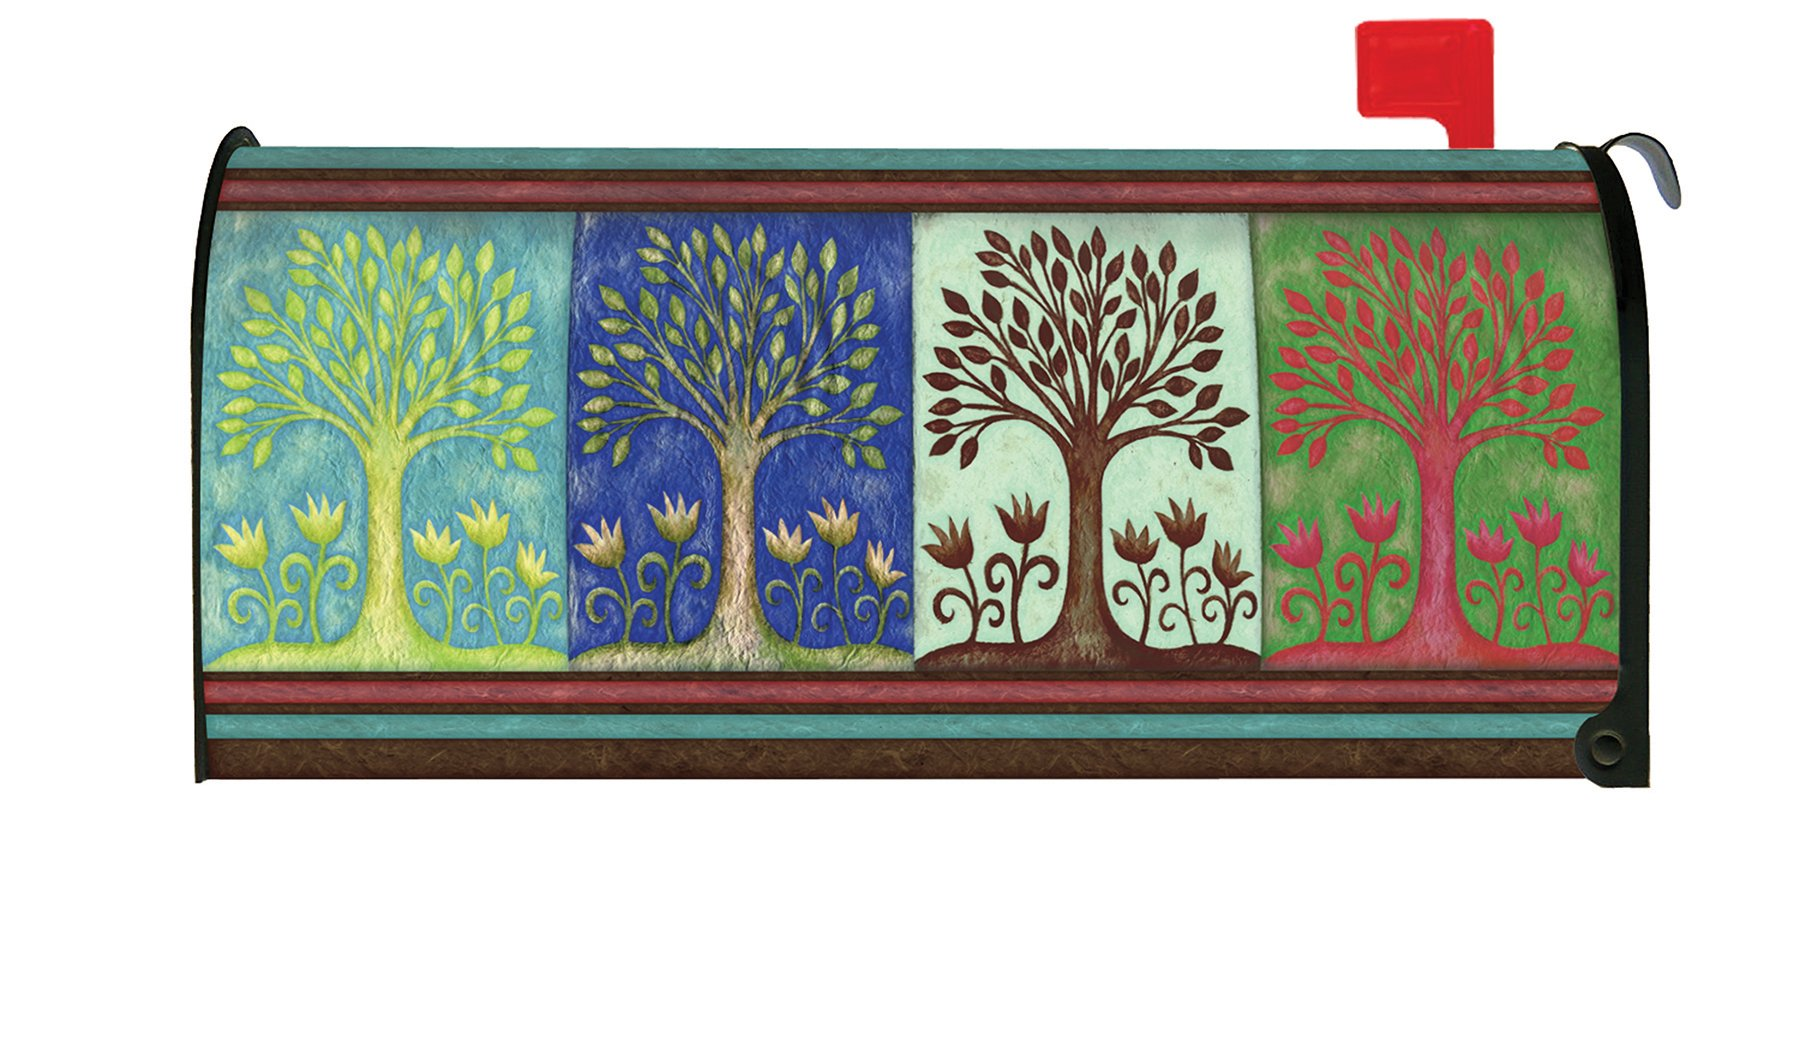 Toland Home Garden Seasons Spring Summer Fall Winter Tree Magnetic Mailbox Cover